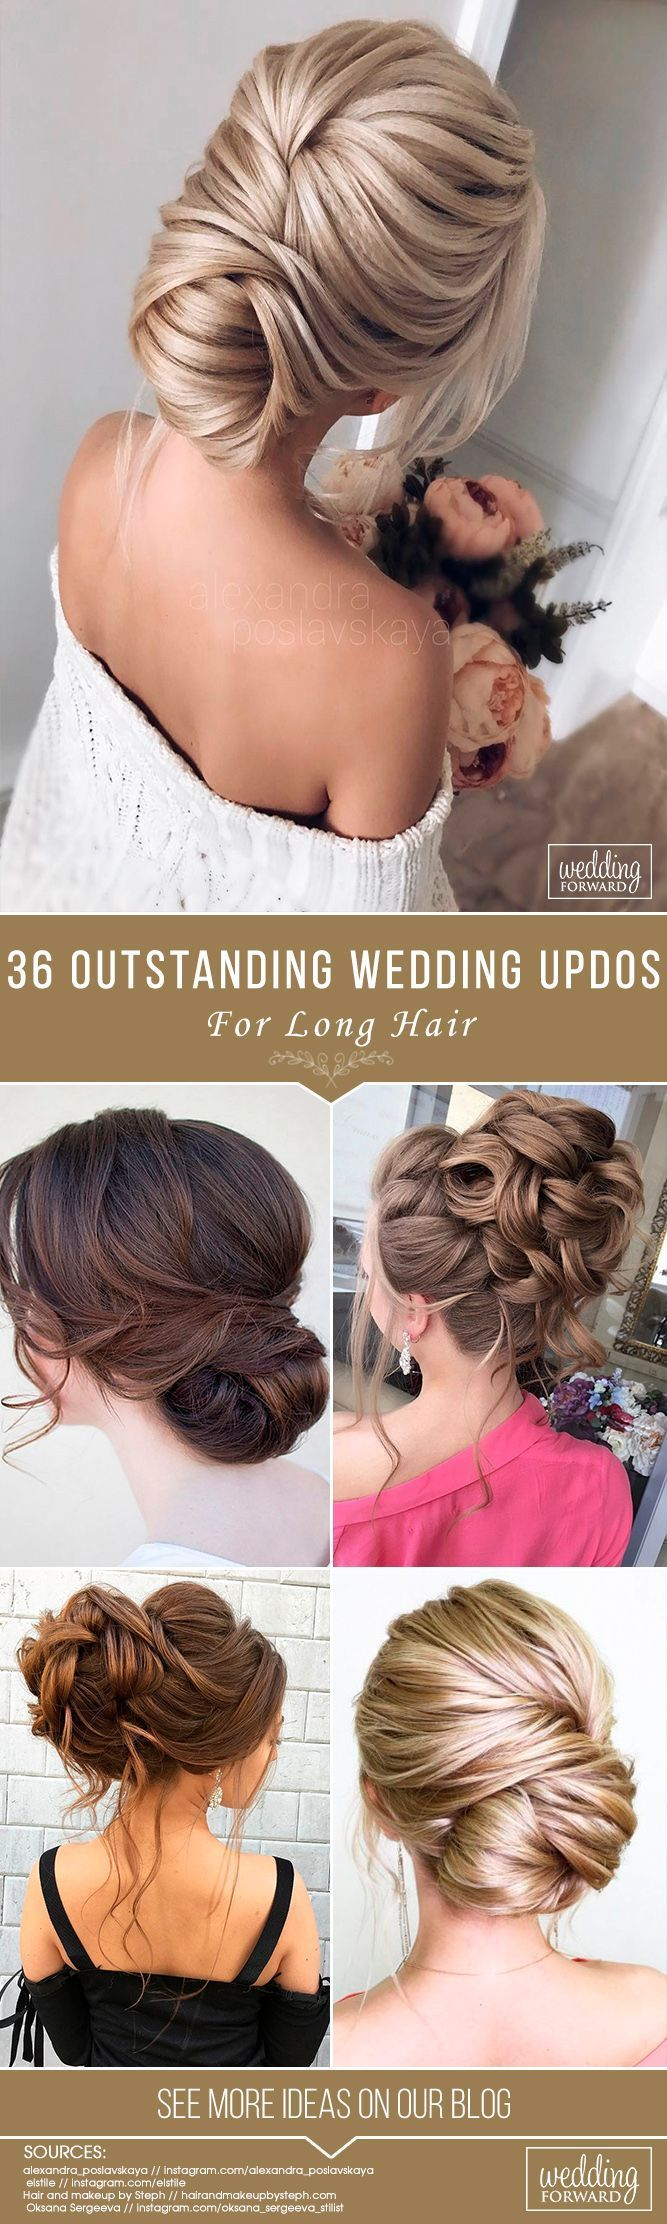 36 Most Outstanding Wedding Updos For Long Hair ❤️ We have collected the mos...